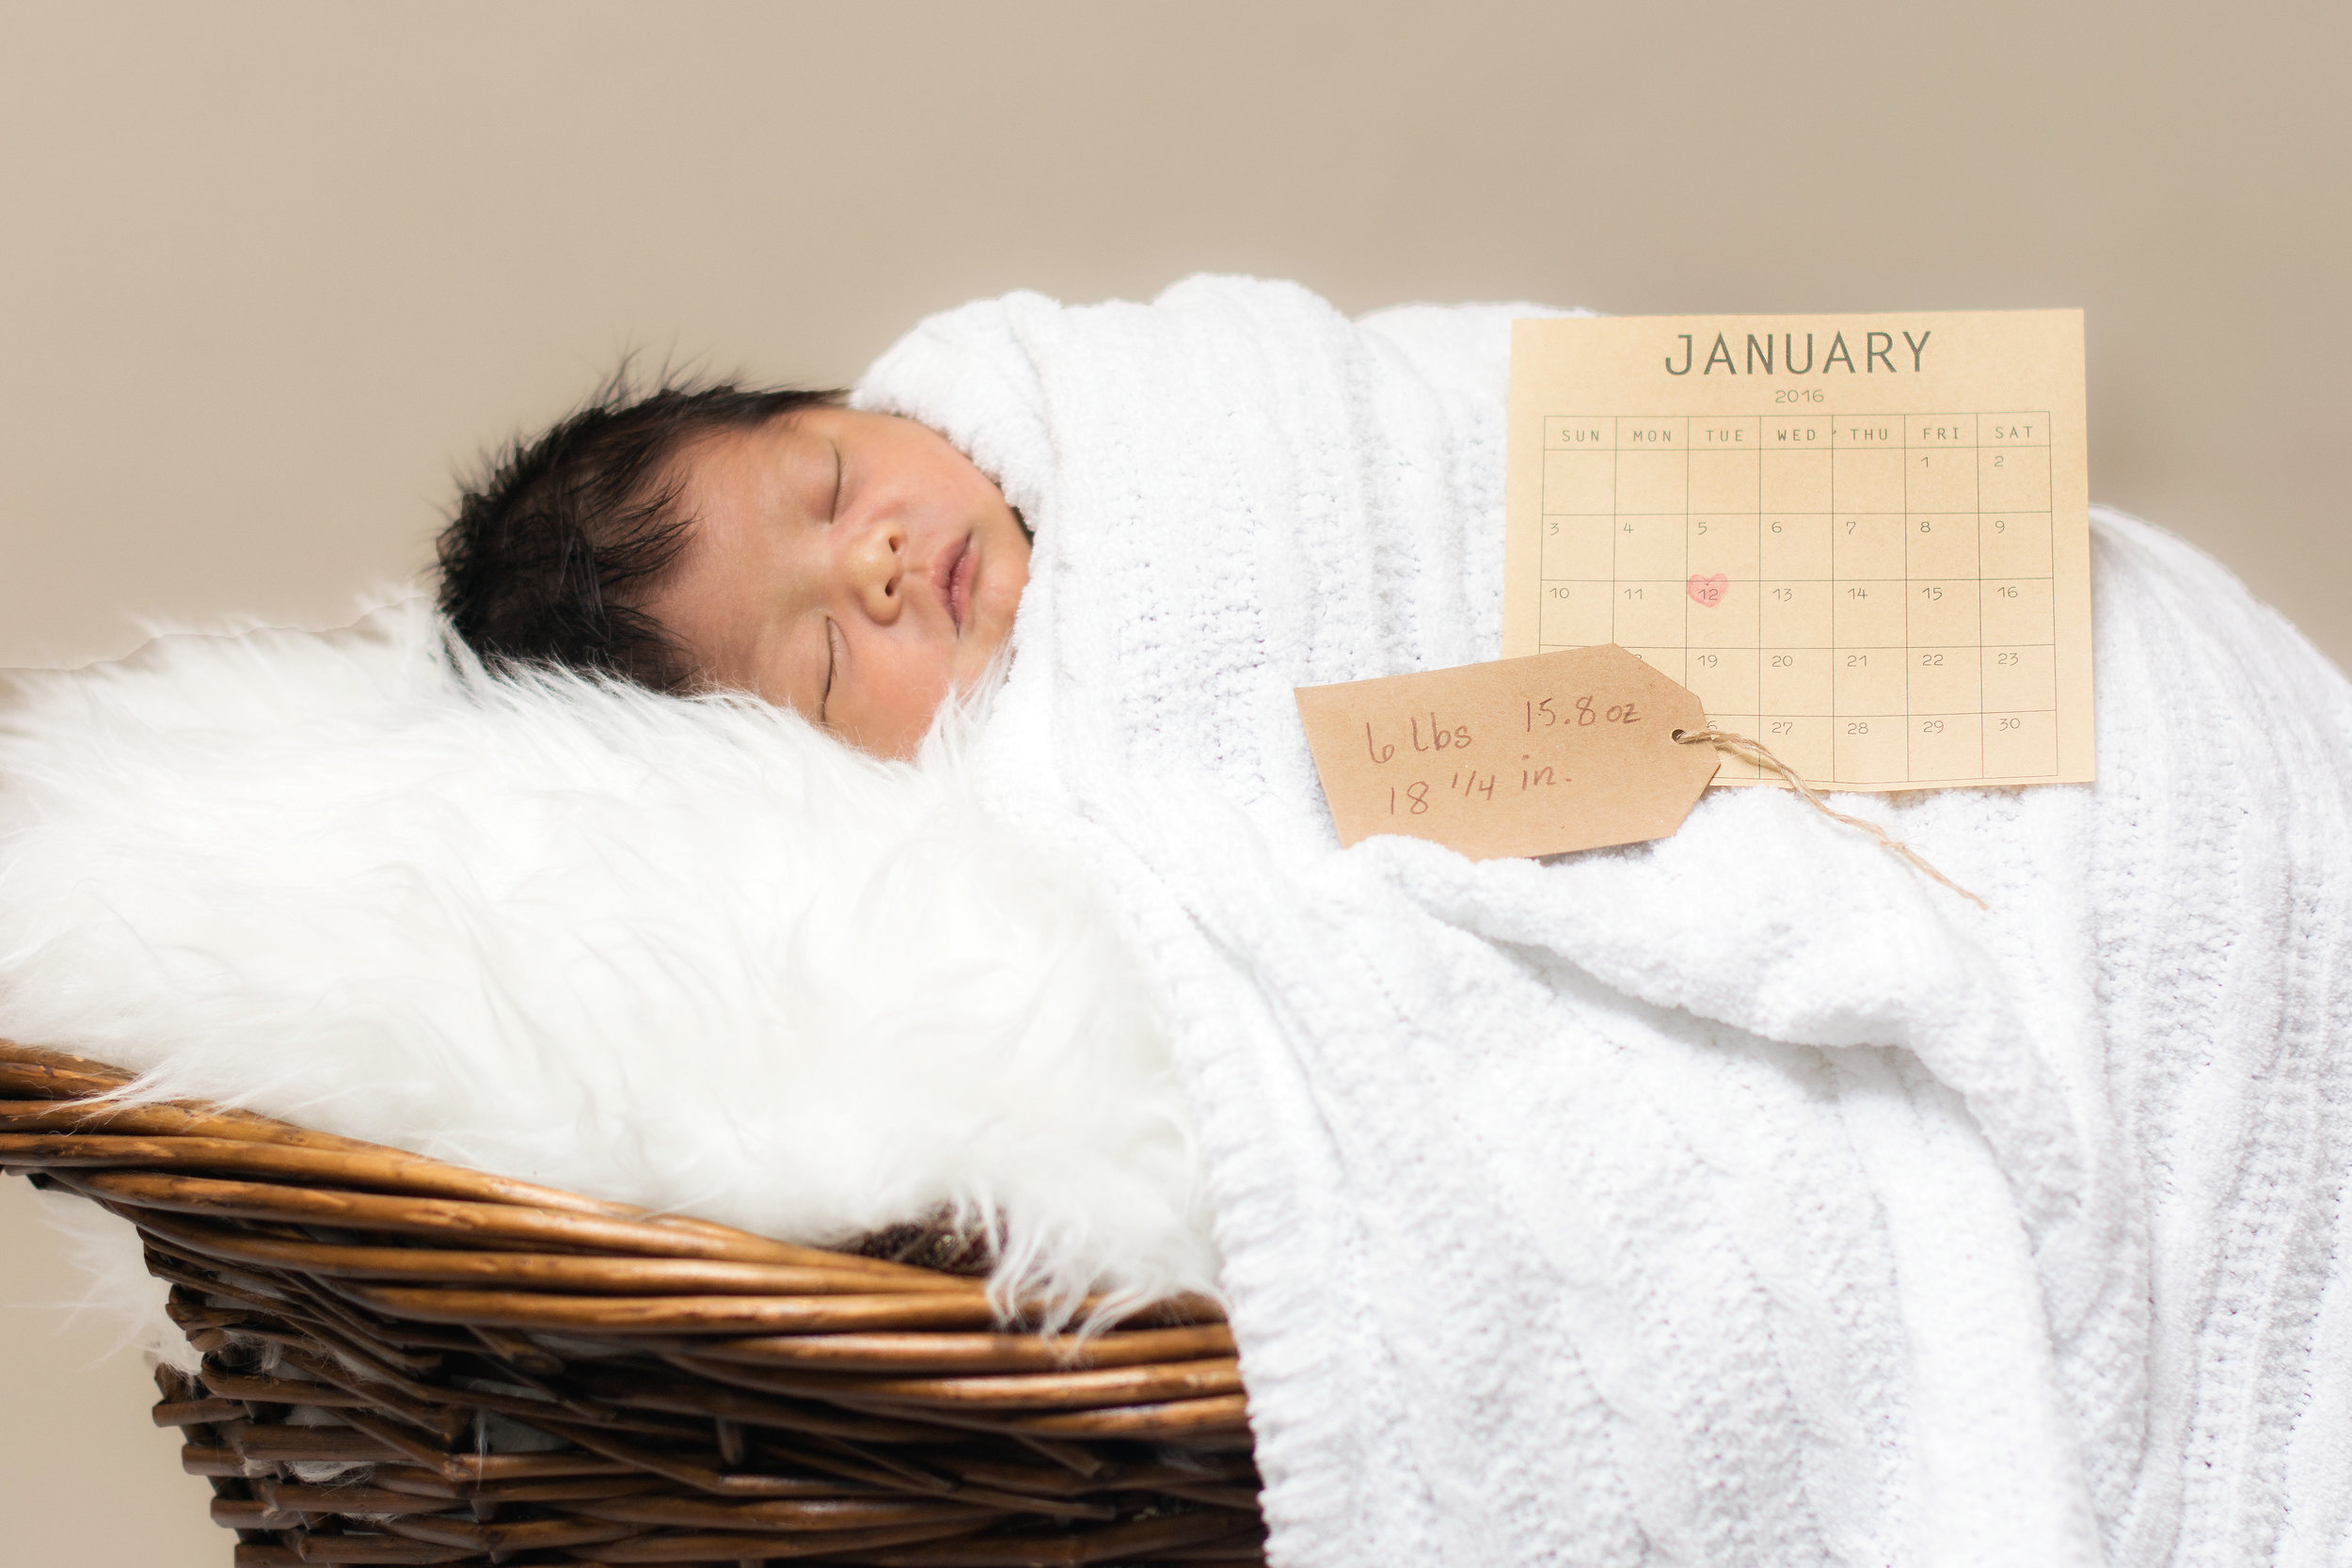 GOLD [$350] - IDEAL FOR NEWBORNS AND LARGE FAMILIESUp to 2 Hours Session | 25 – 35 Full Resolution Edited Digital Images |